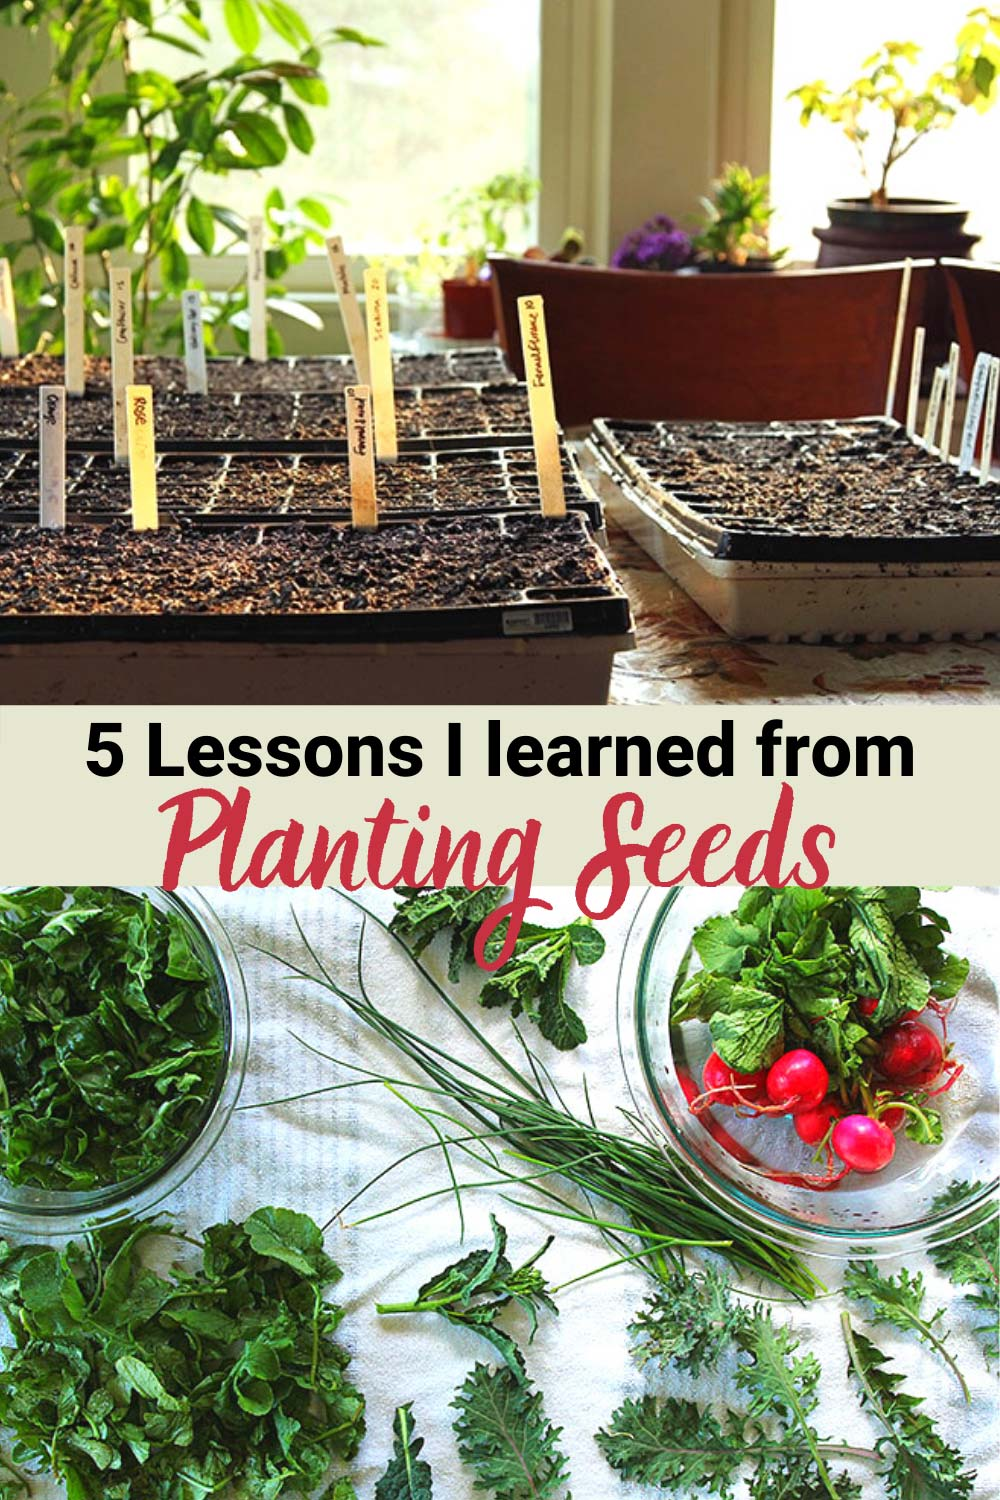 5 Lessons Planting Seeds Taught Me About Life